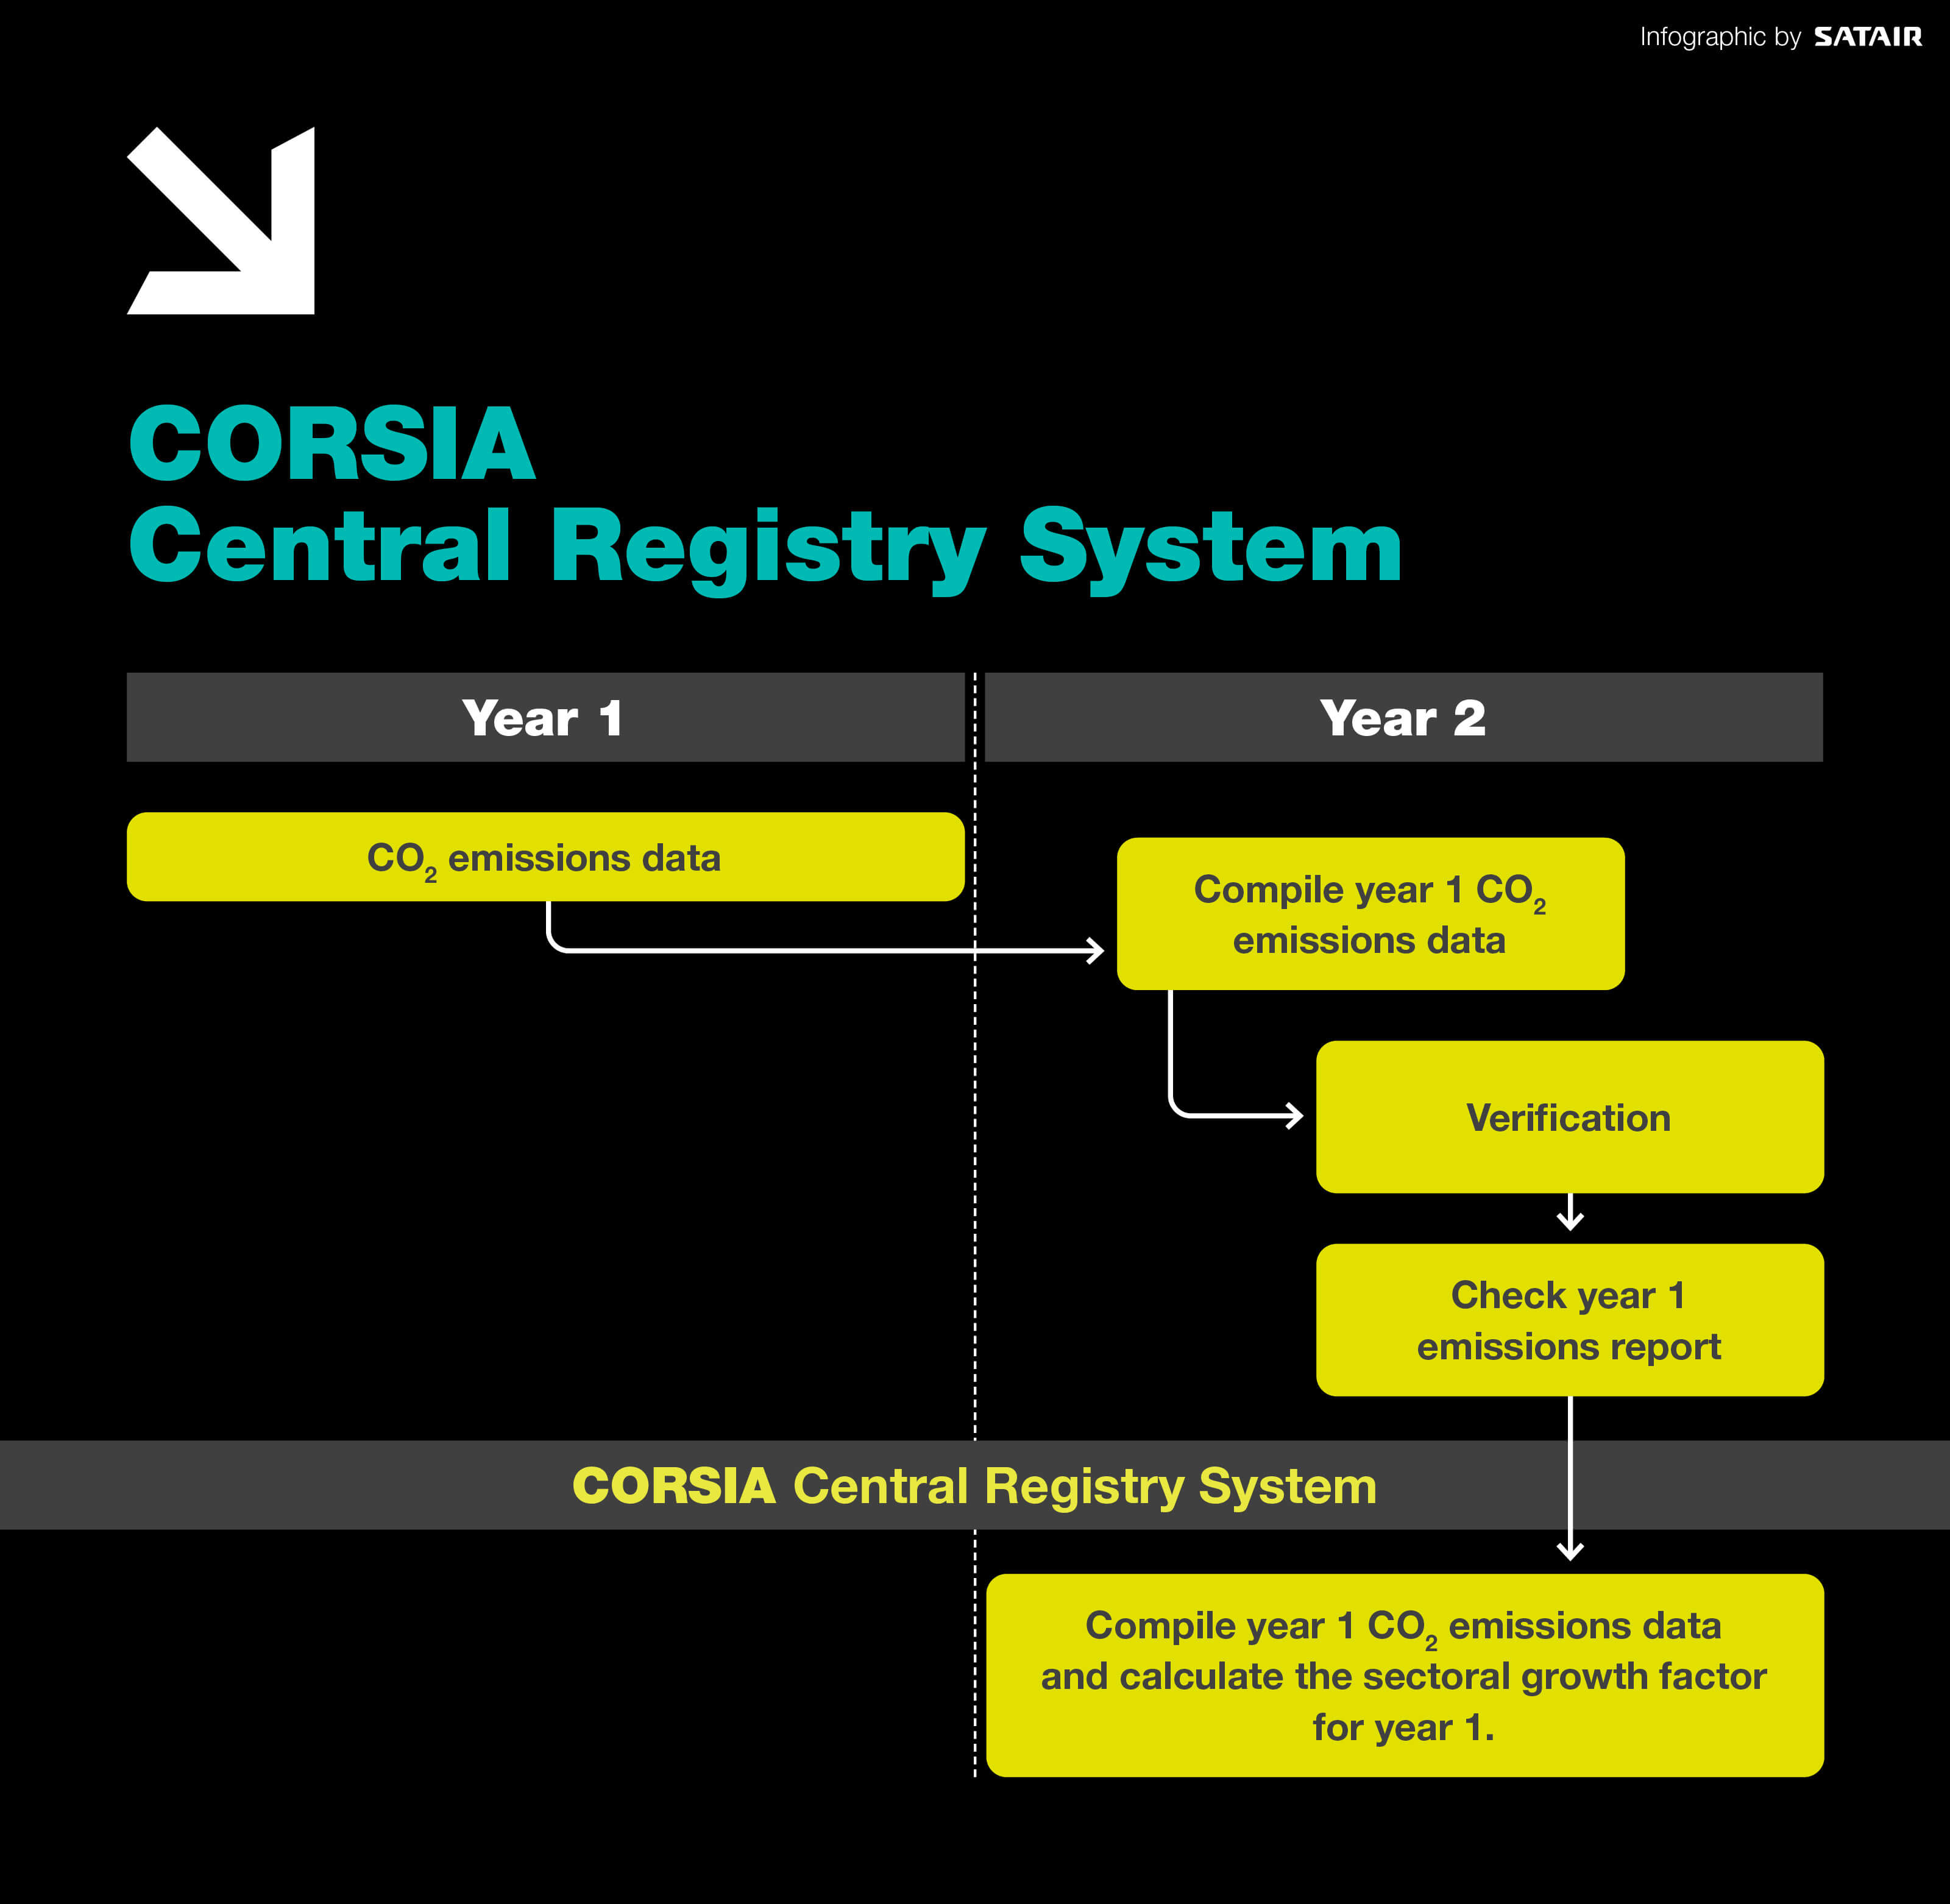 CORSIA Central Registry System